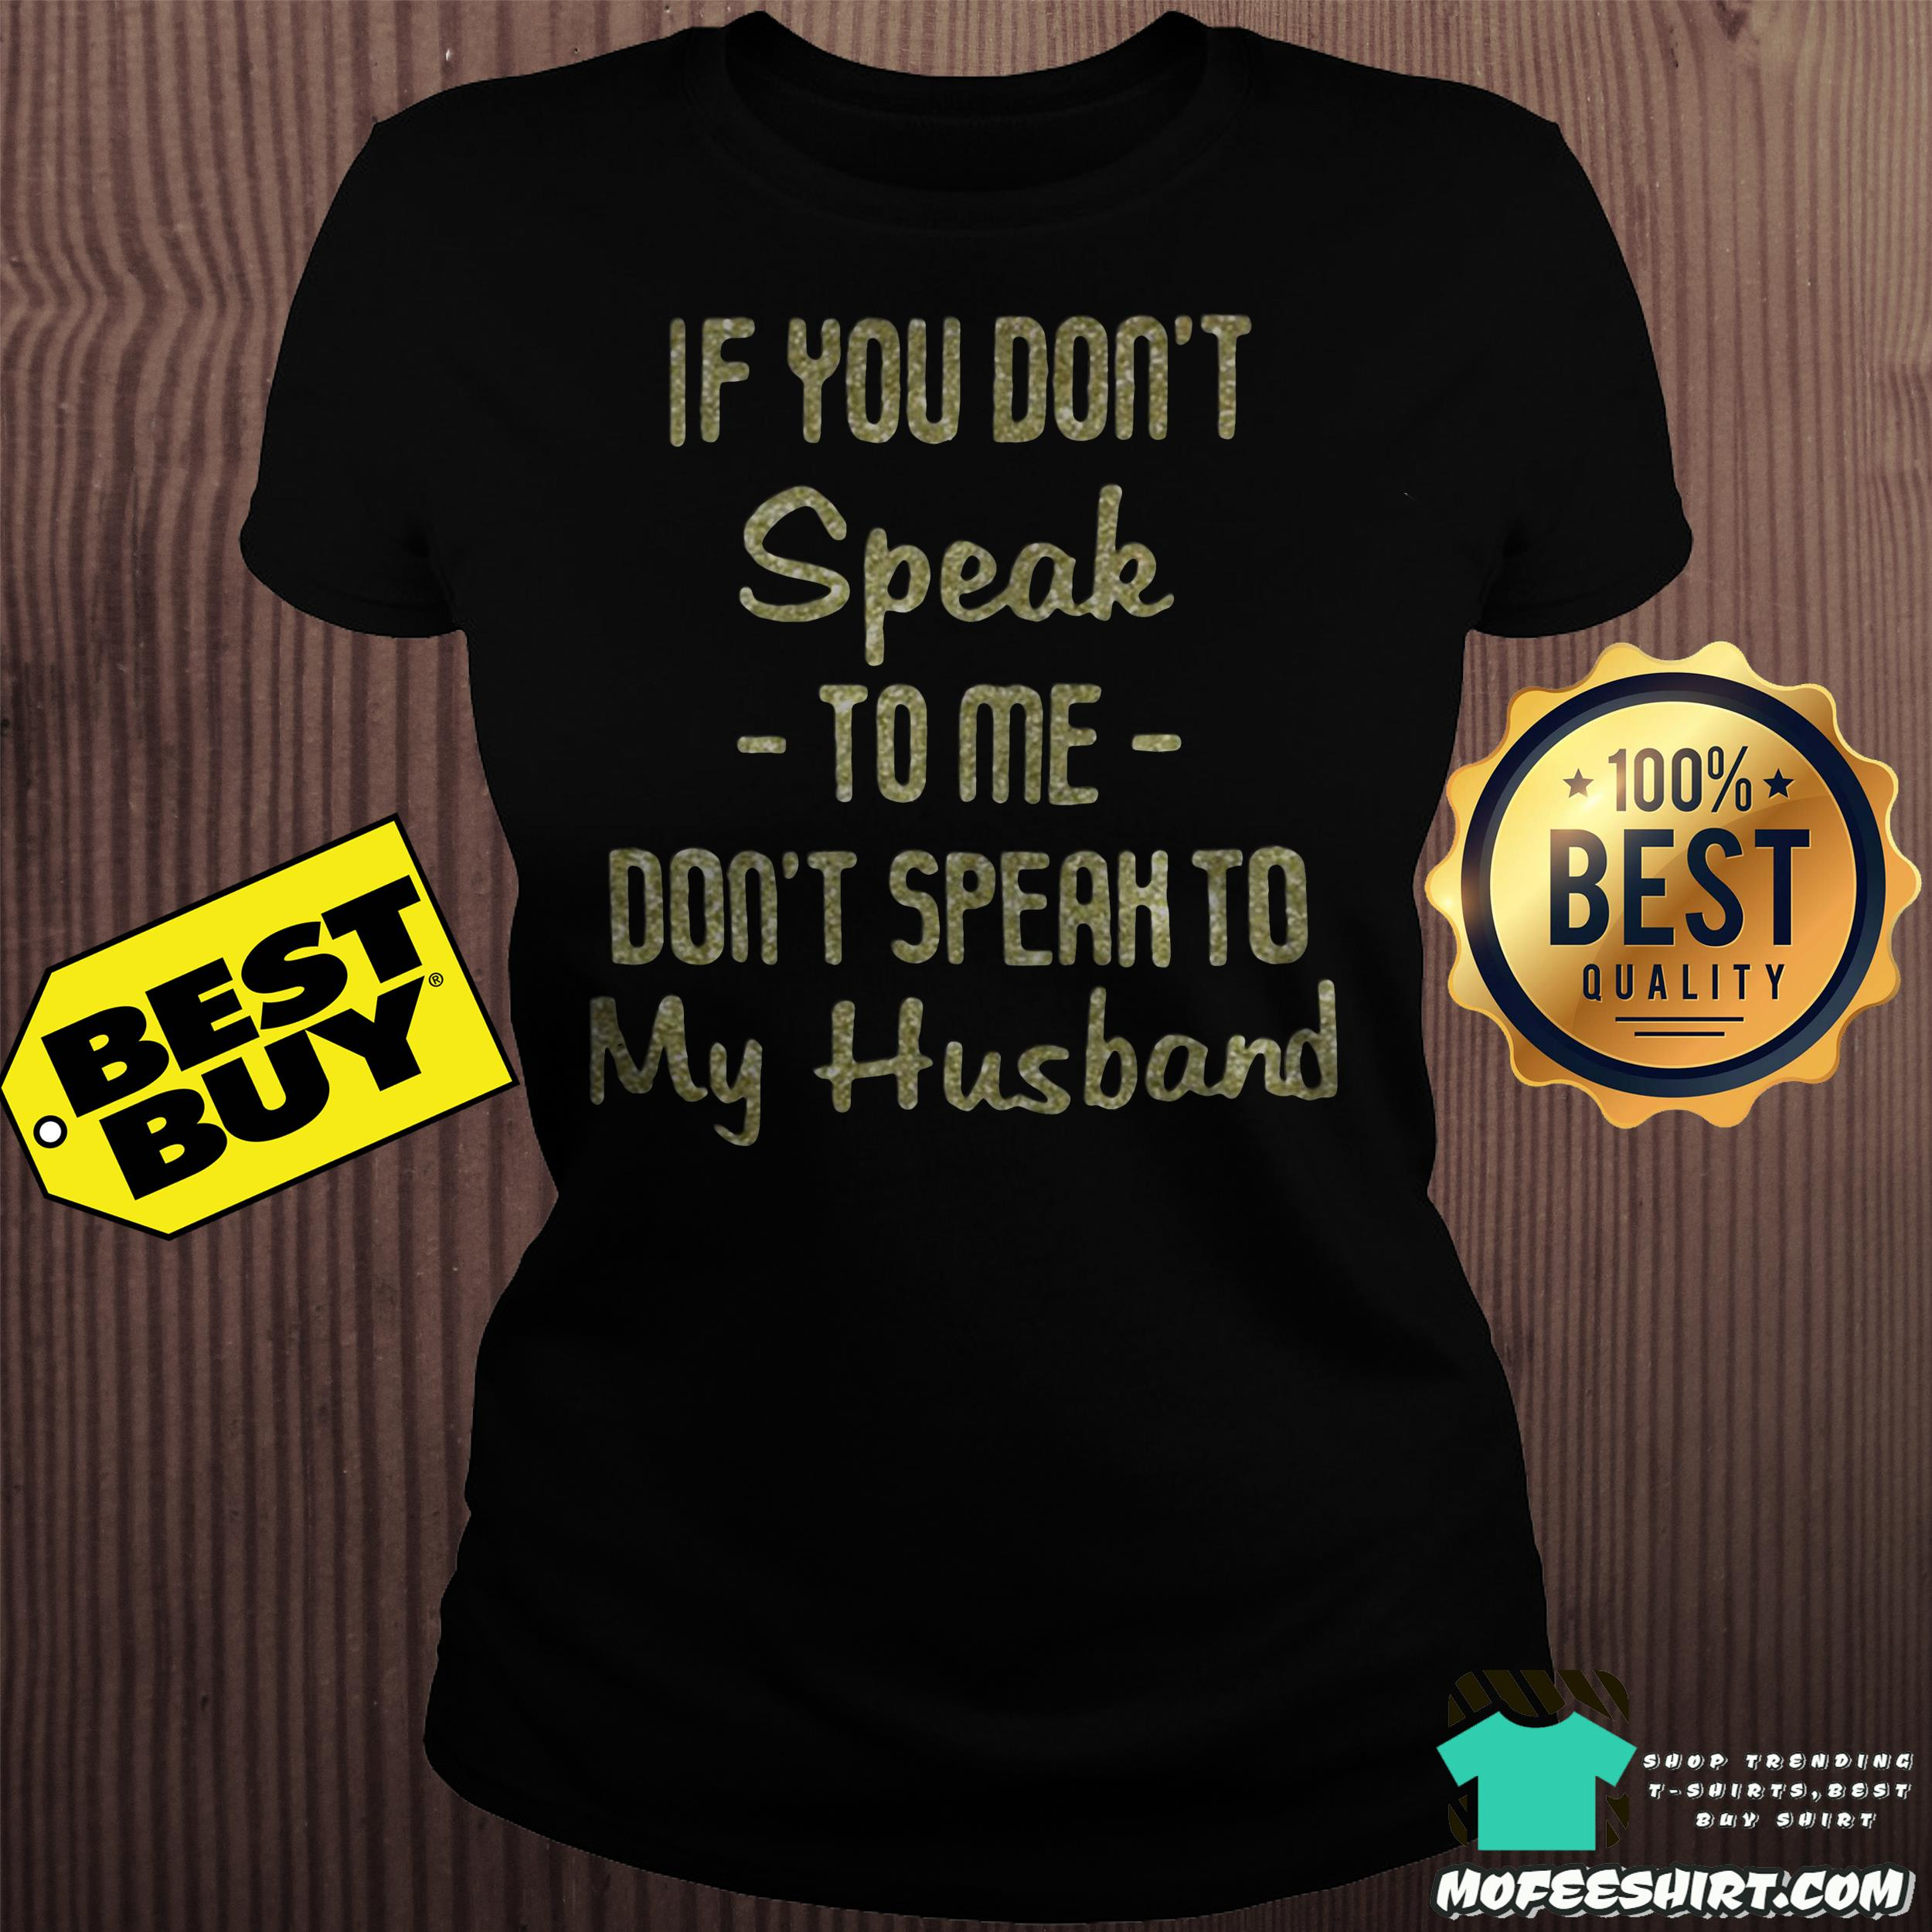 if you dont speak to me dont speak to my husband ladies tee - If you don't speak to me don't speak to my husband shirt